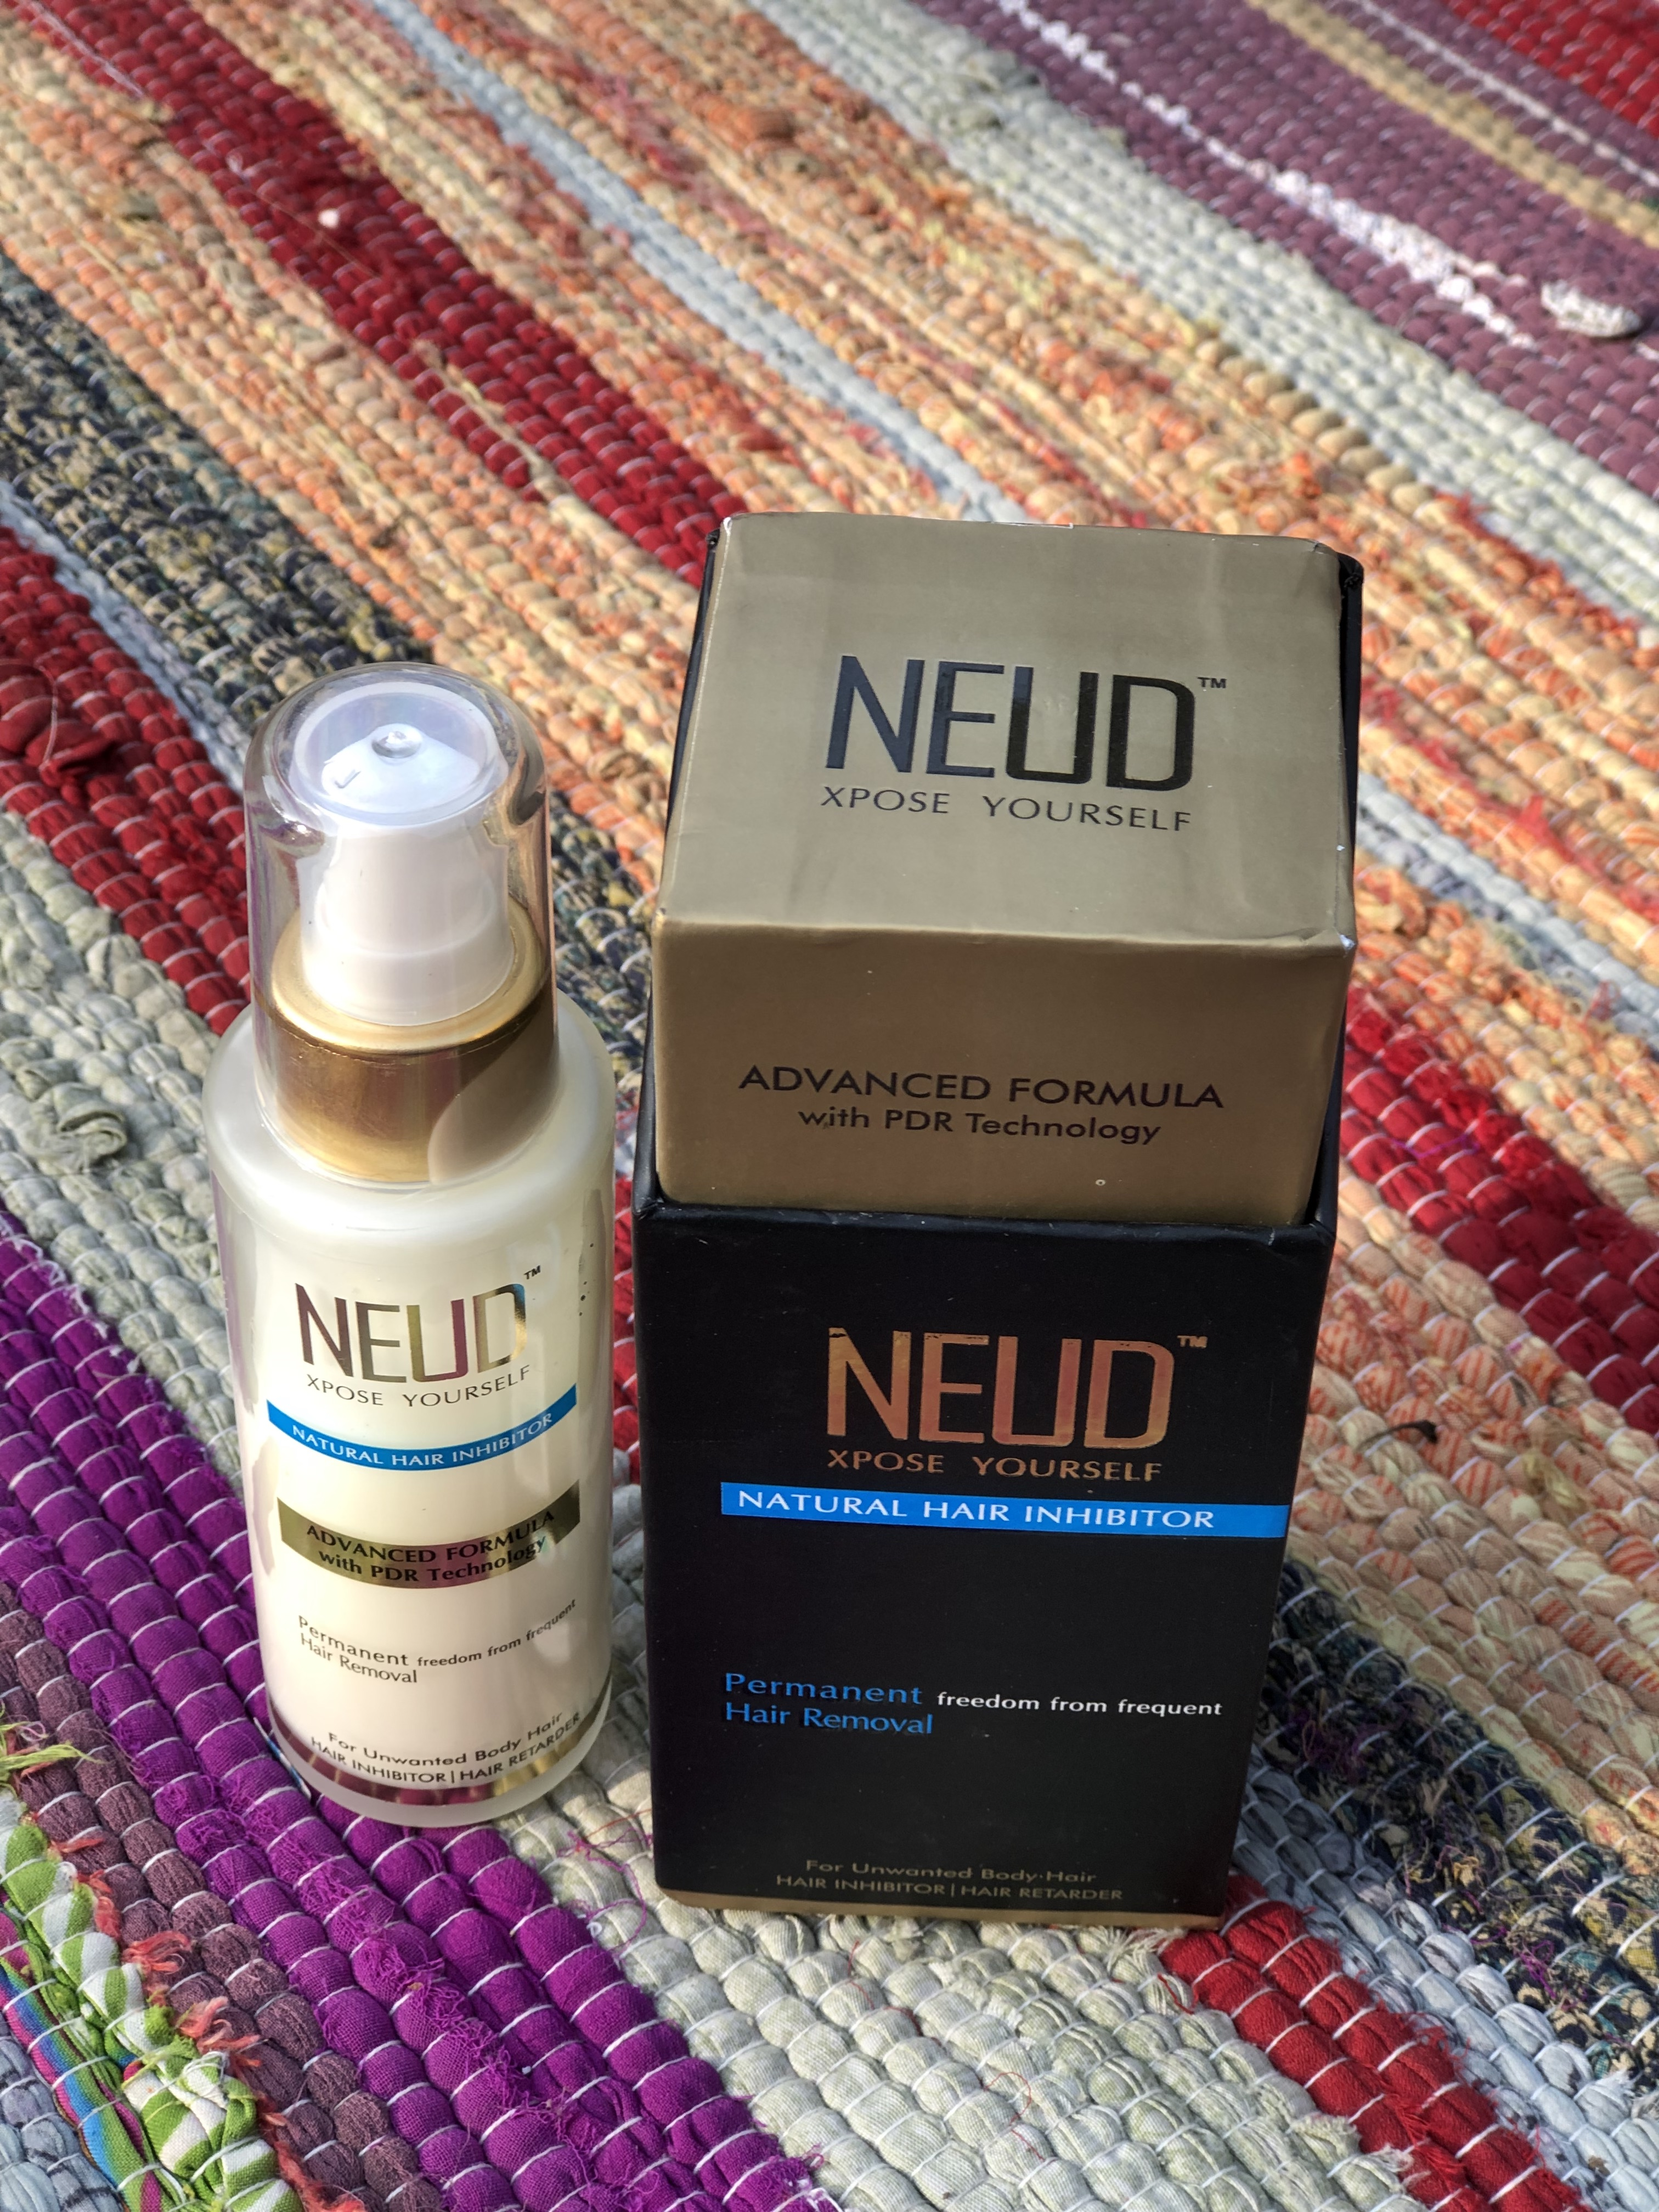 Get Rid Of Unwanted Hair Permanently With NEUD